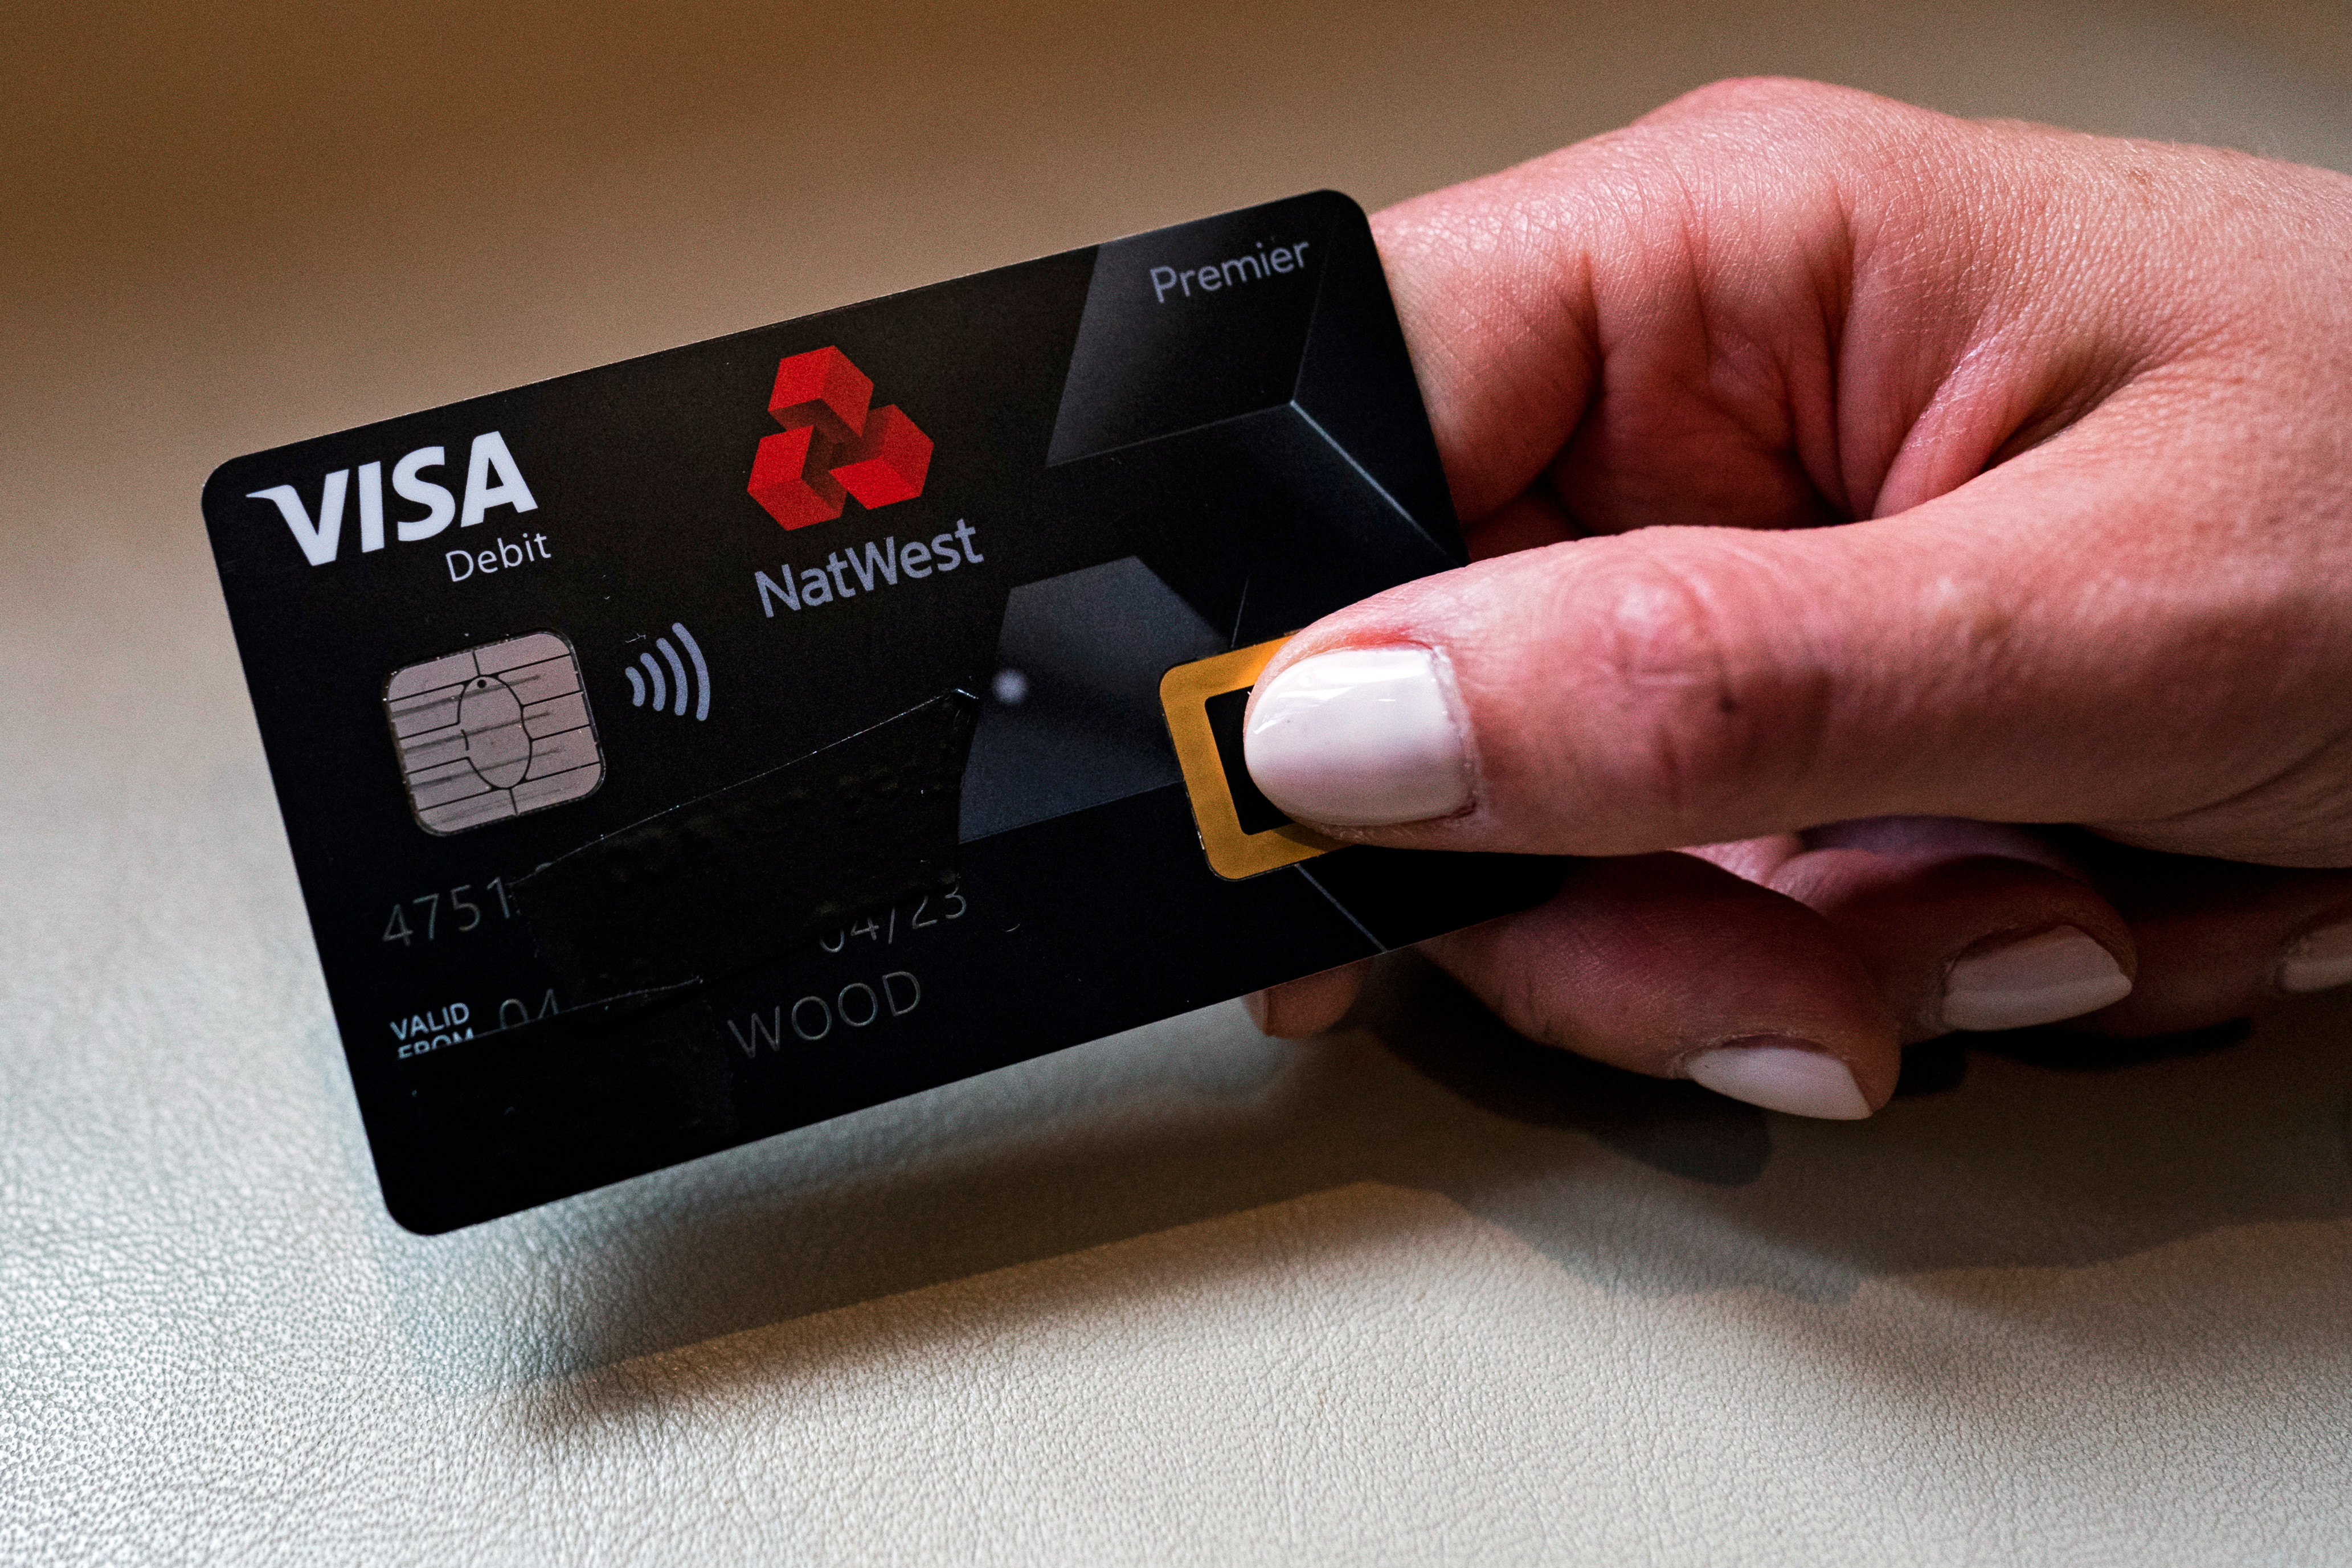 Natwest credit card online